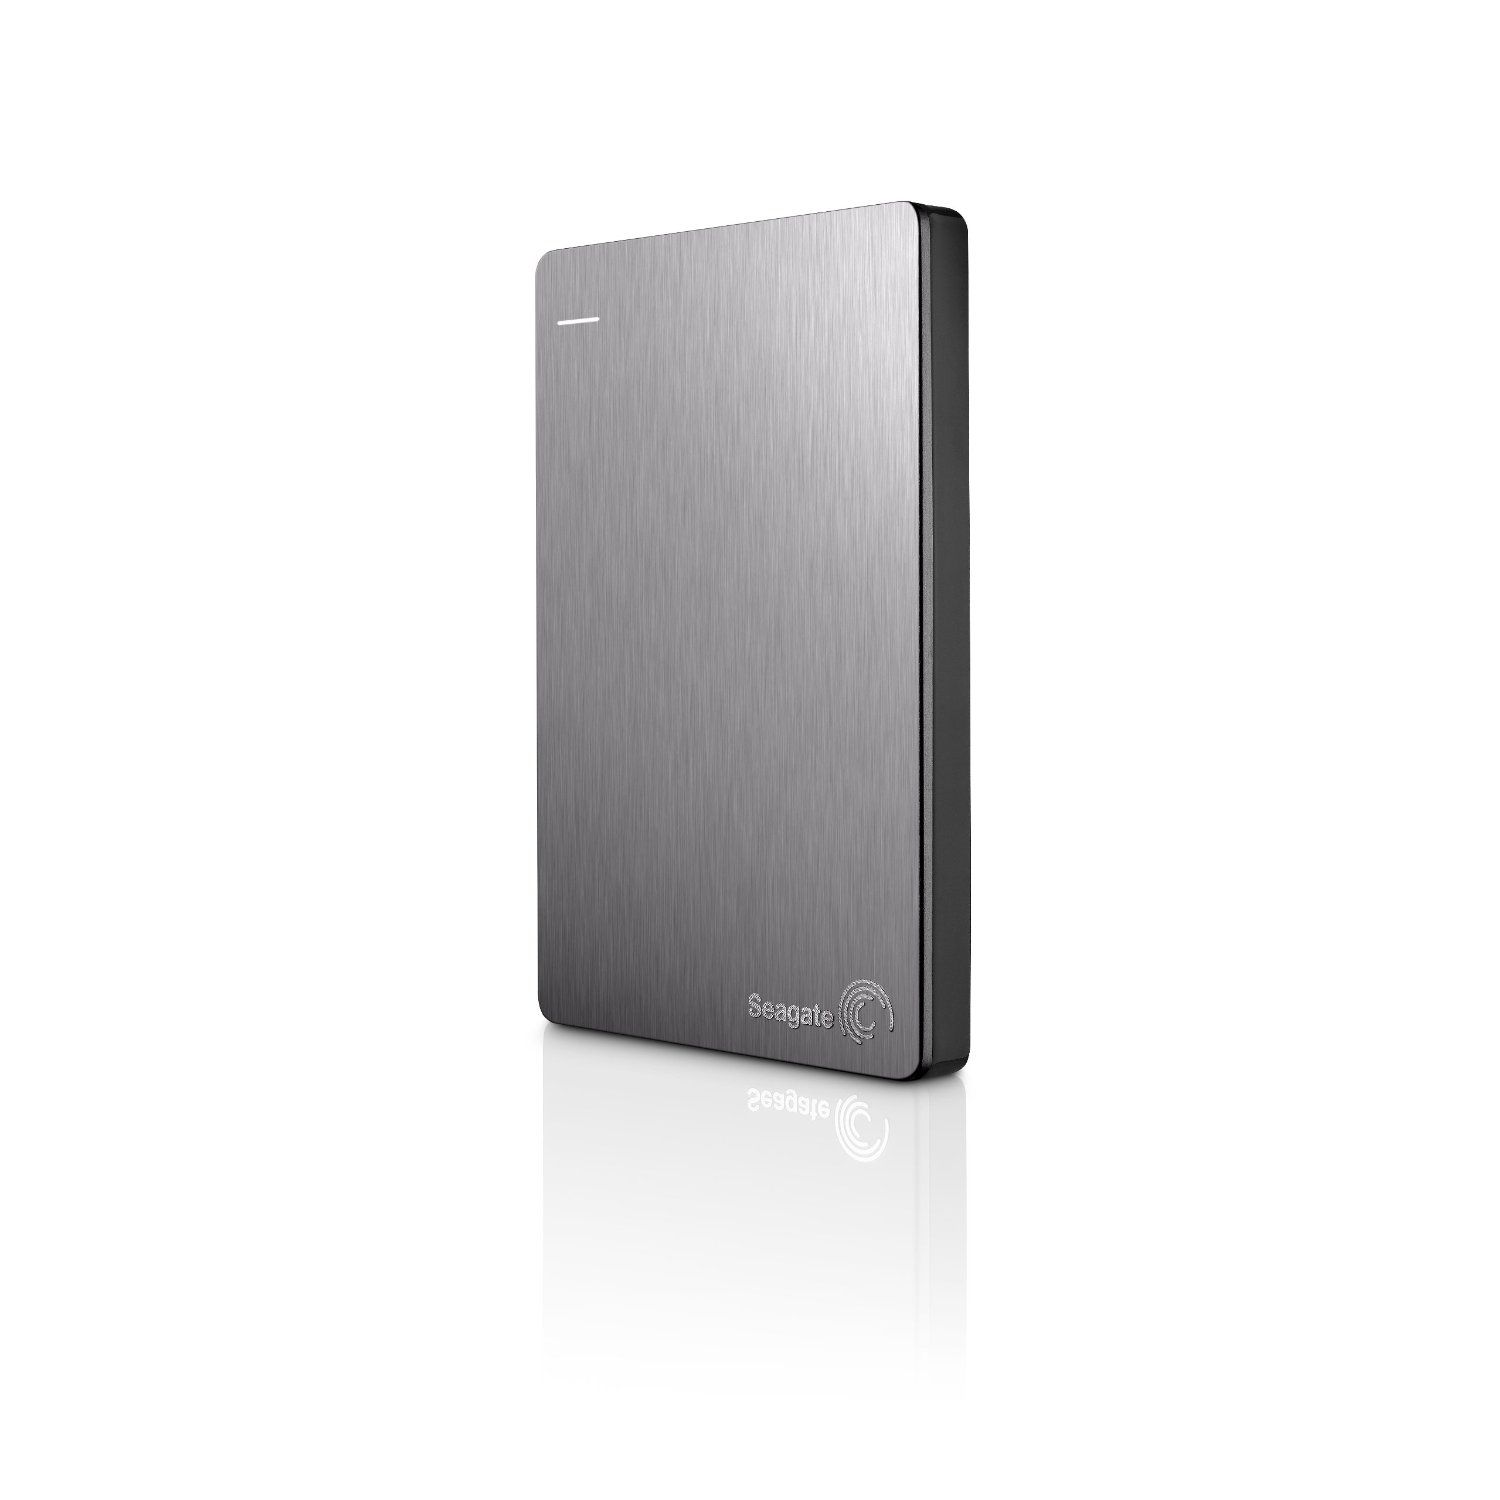 Seagate Backup Plus Slim 2tb Portable External Hard Drive With Usb 30 Harddisk Mobile Device Silver